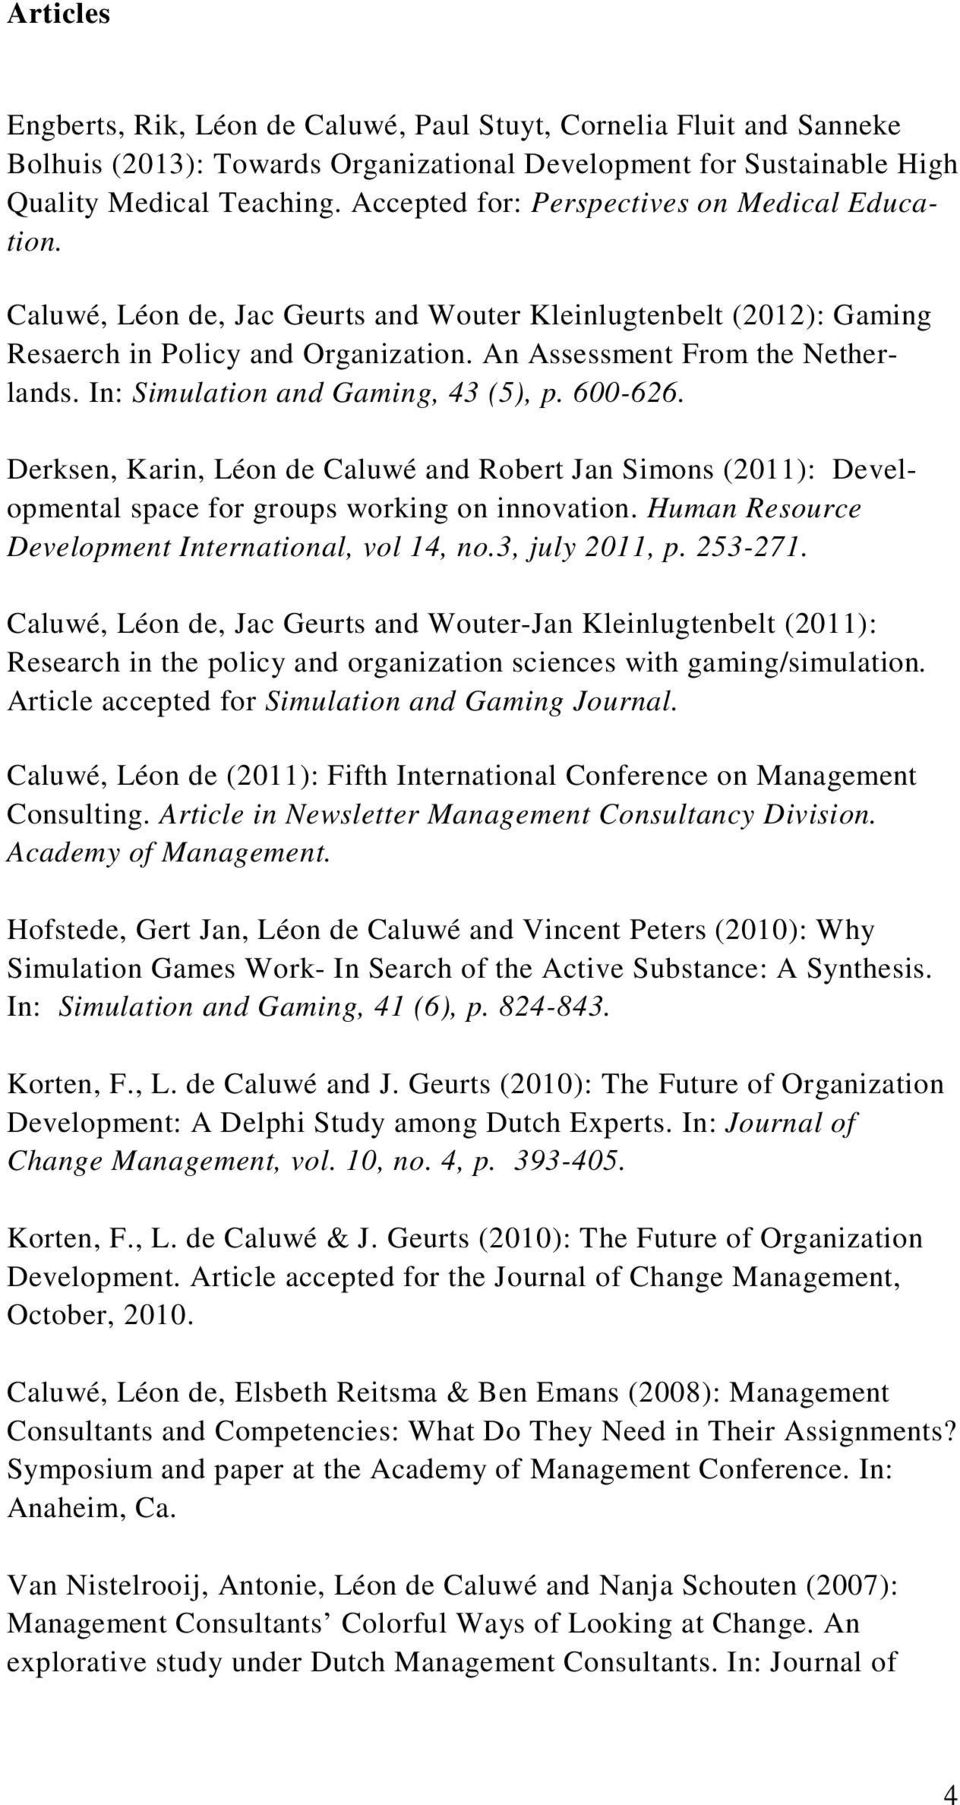 In: Simulation and Gaming, 43 (5), p. 600-626. Derksen, Karin, Léon de Caluwé and Robert Jan Simons (2011): Developmental space for groups working on innovation.